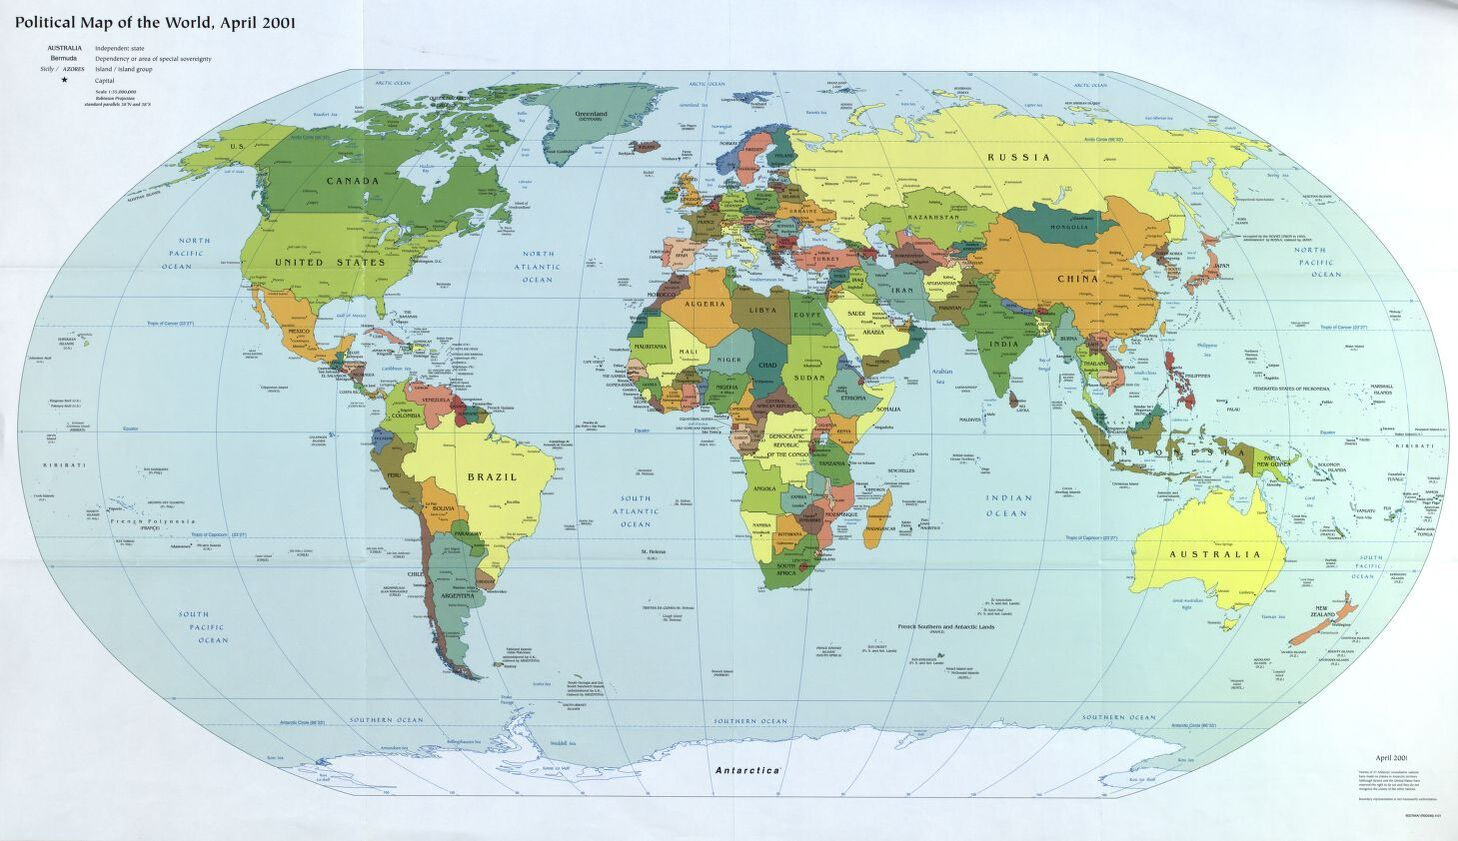 The World Political Map  | April 2001 | Large, Printable Downloadable Map